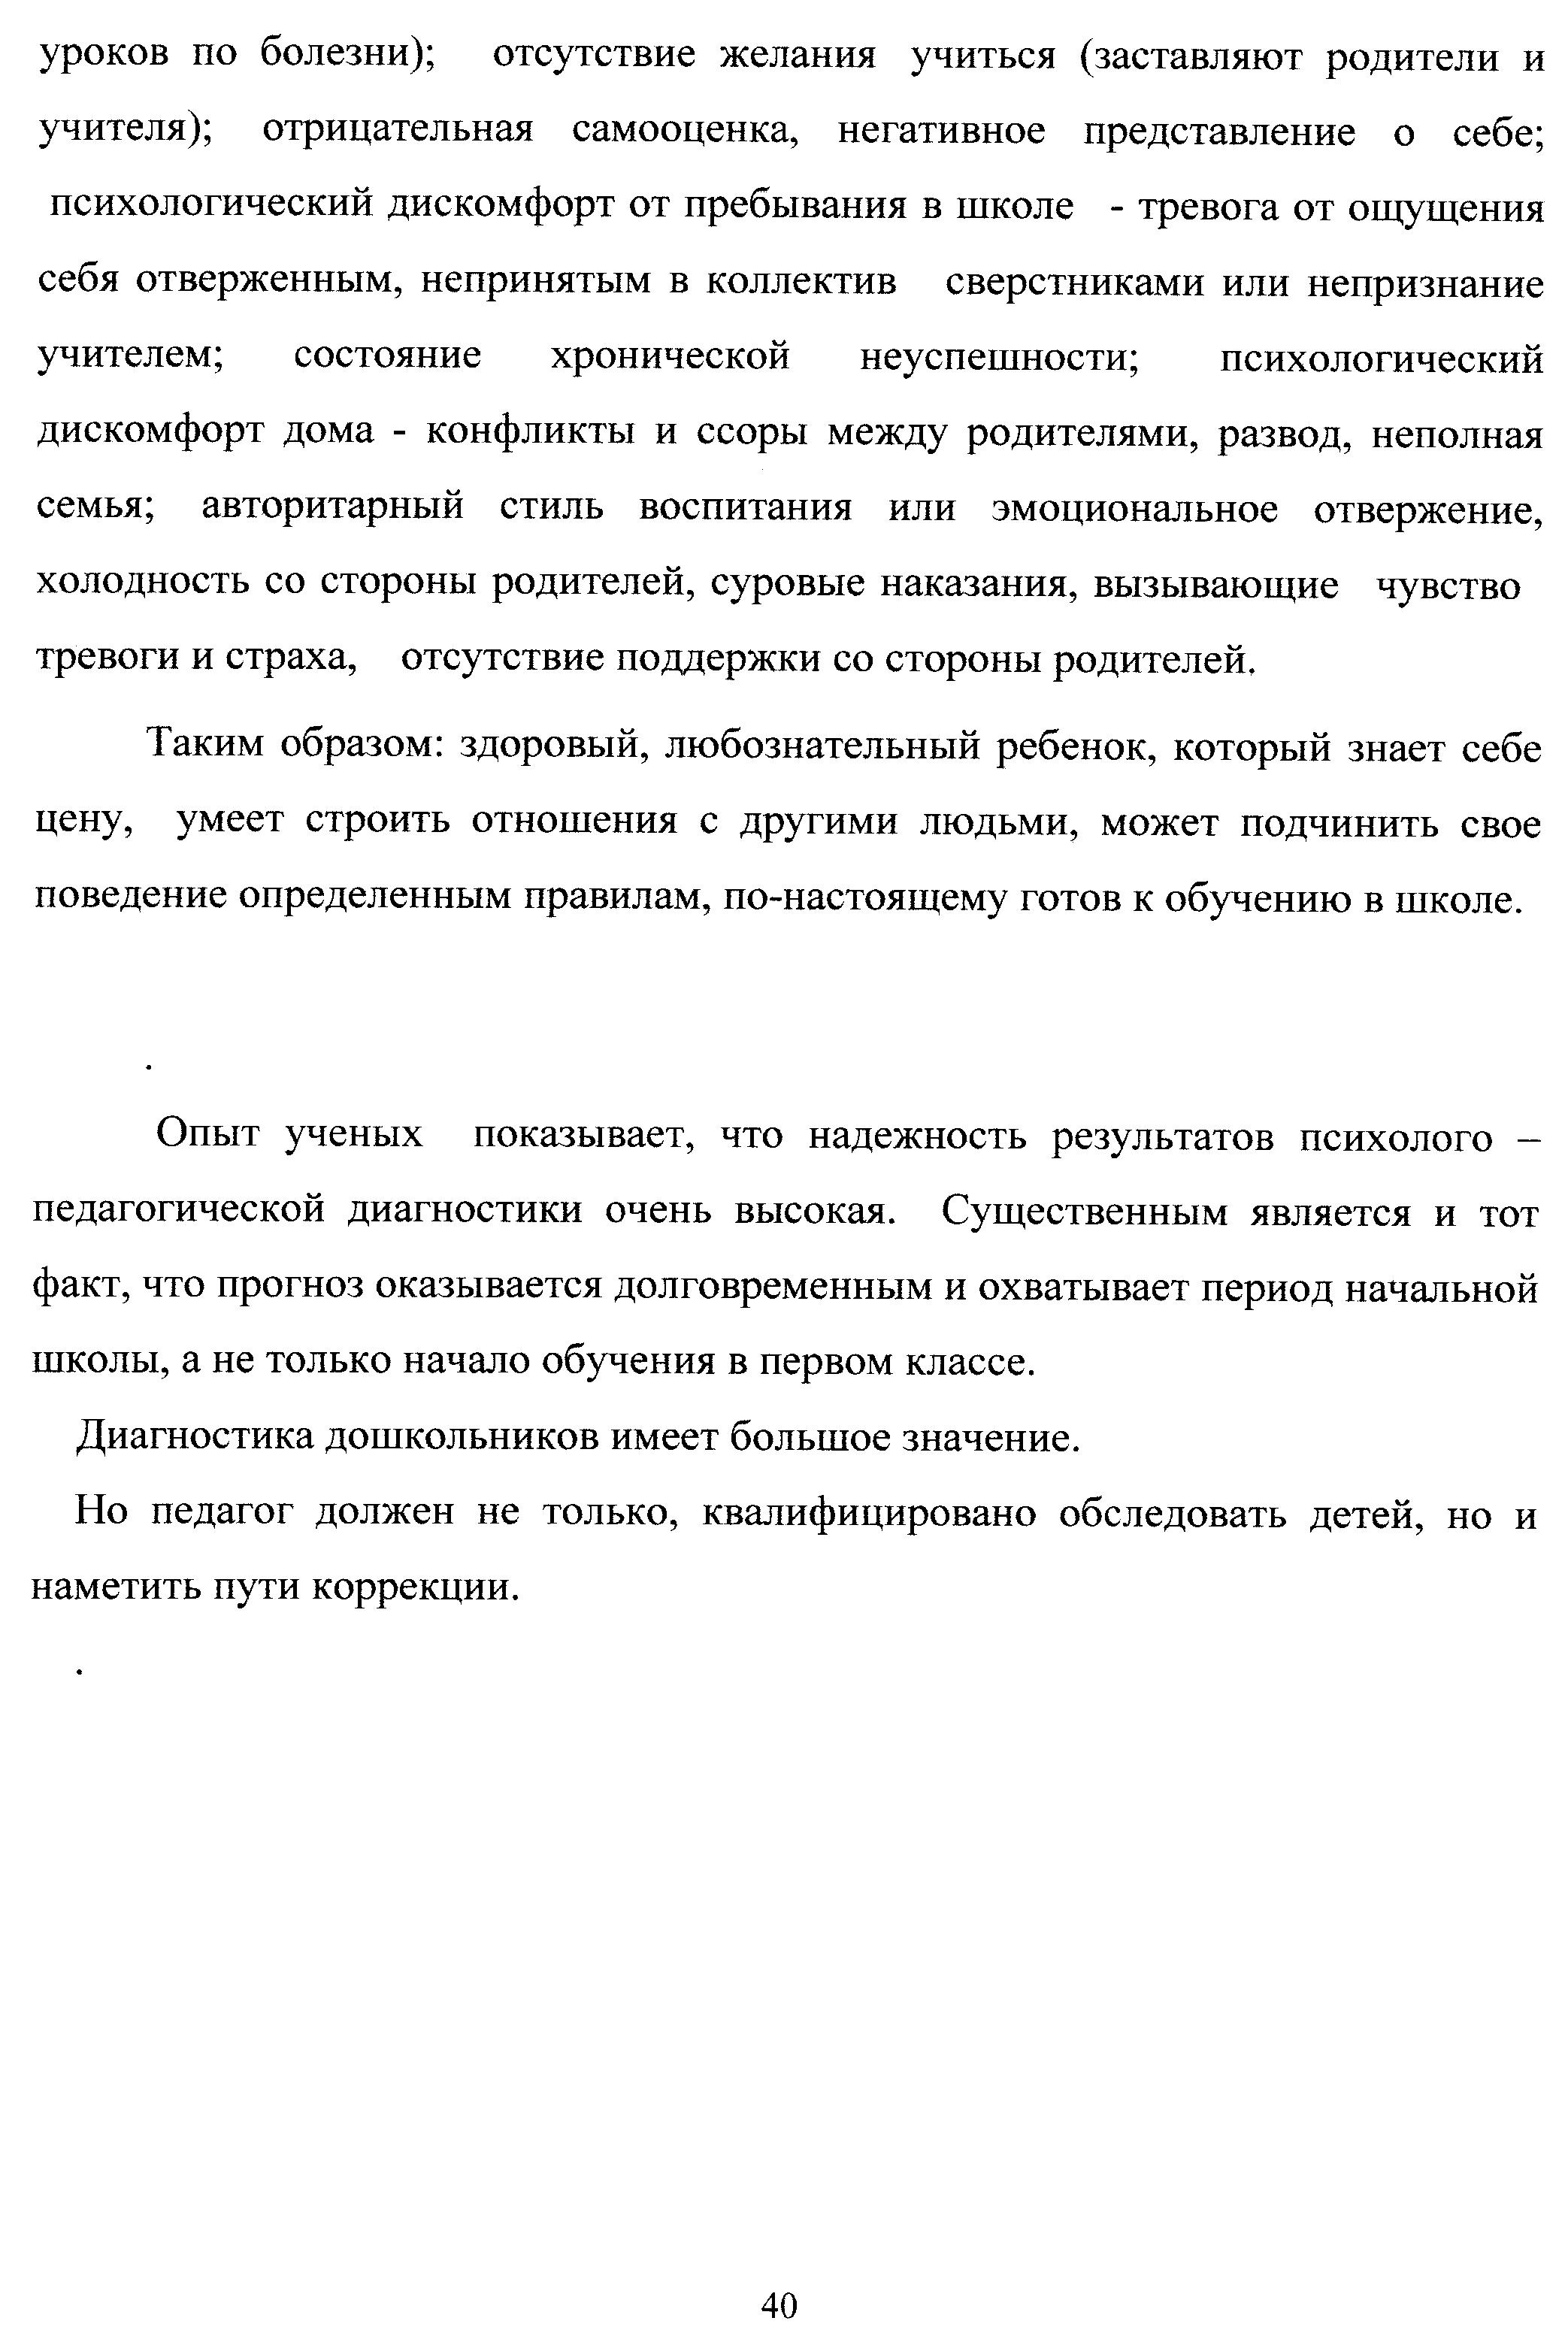 C:\Users\ЛАРИСА\Documents\Scanned Documents\Рисунок (144).jpg